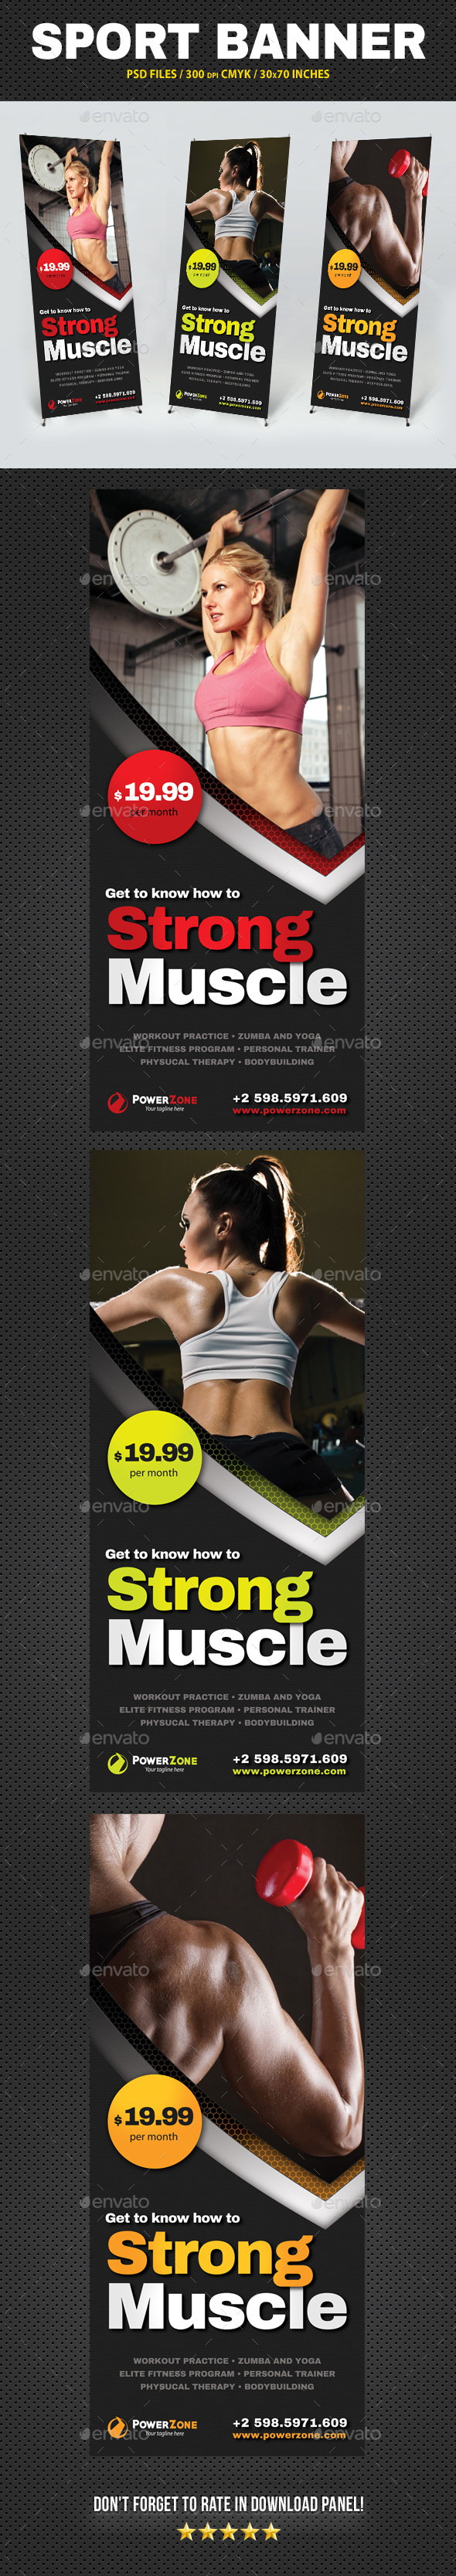 Sport Banner Template 24 - Signage Print Templates